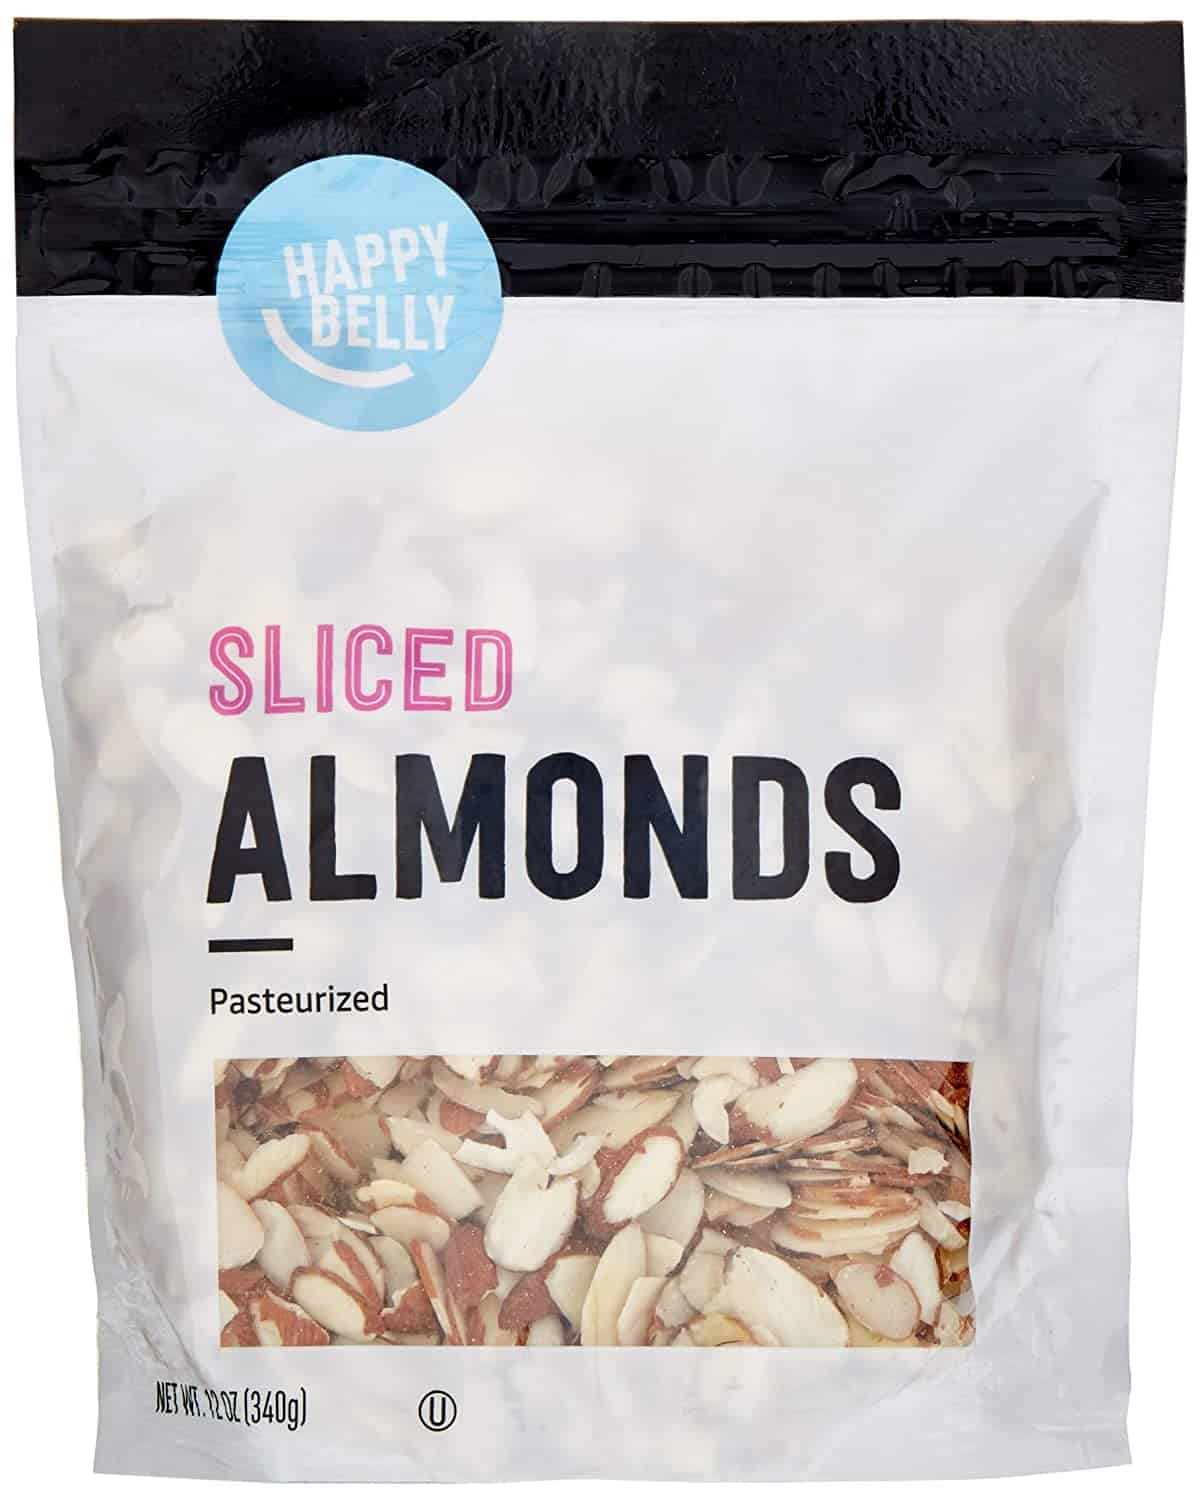 Happy Belly Amazon Brand Sliced Almonds, 12 Ounce